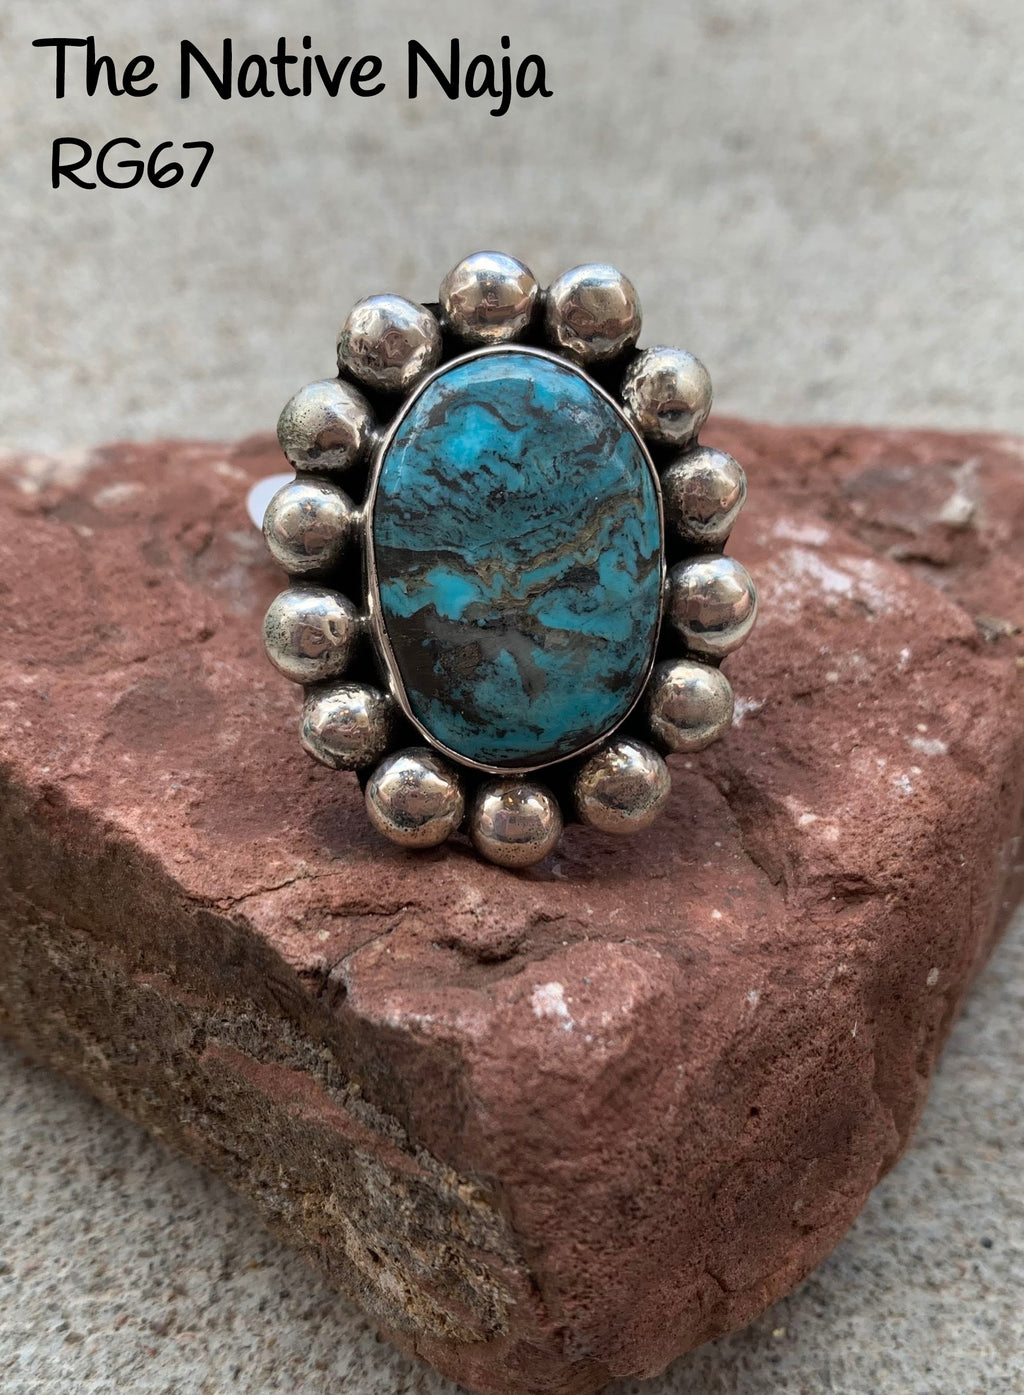 Genuine Navajo Sterling Silver & Kingman Turquoise Ring Size 6 1/2 RG67